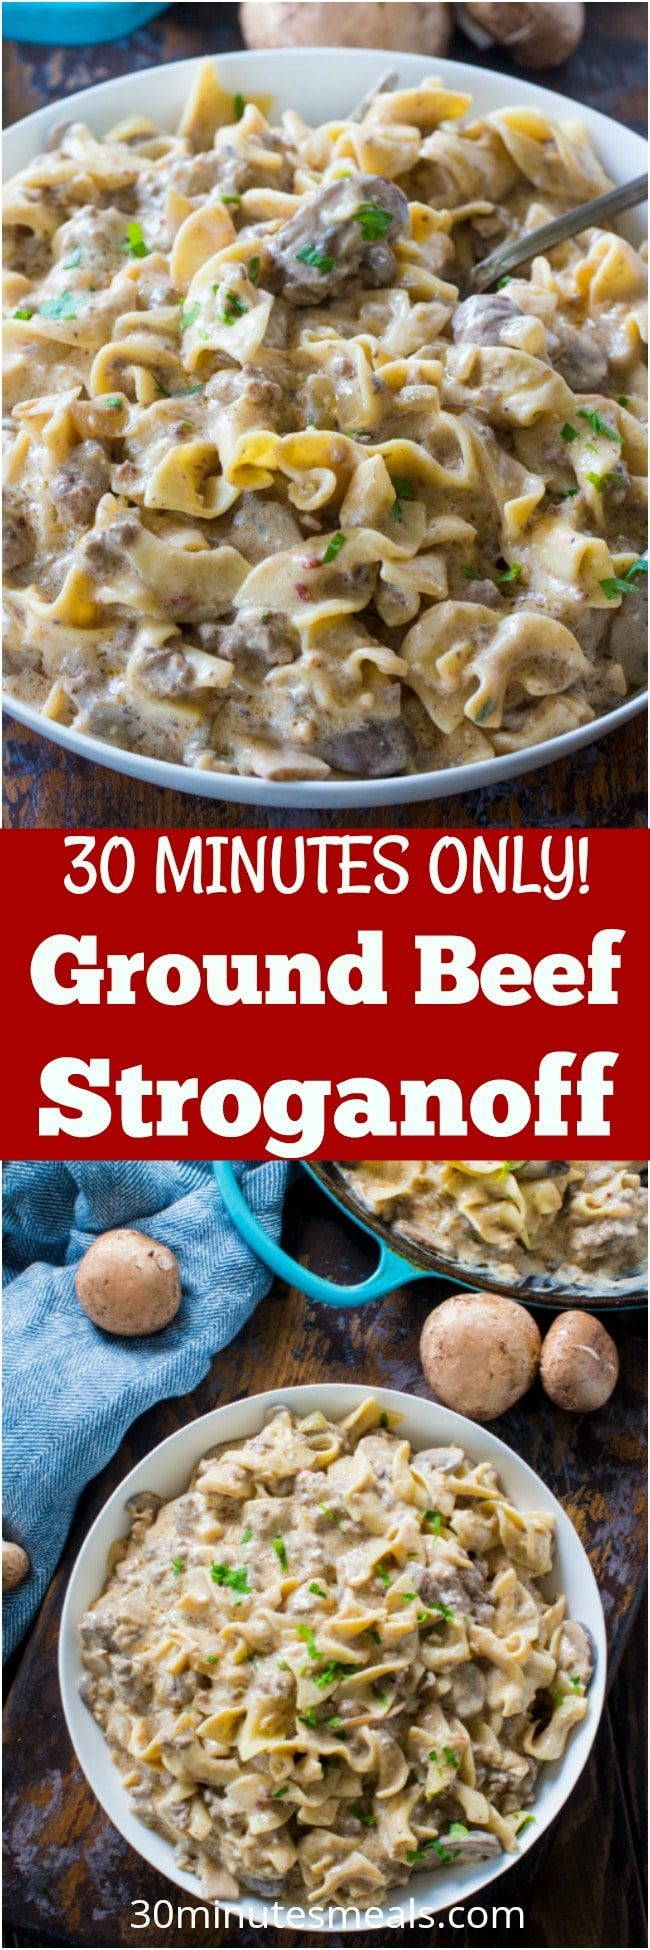 Easy Ground Beef Stroganoff is so unbelievably creamy thanks to a few secret ingredients. Easy to make, in just 30 minutes you have an amazing dinner! #beef #pasta #dinner